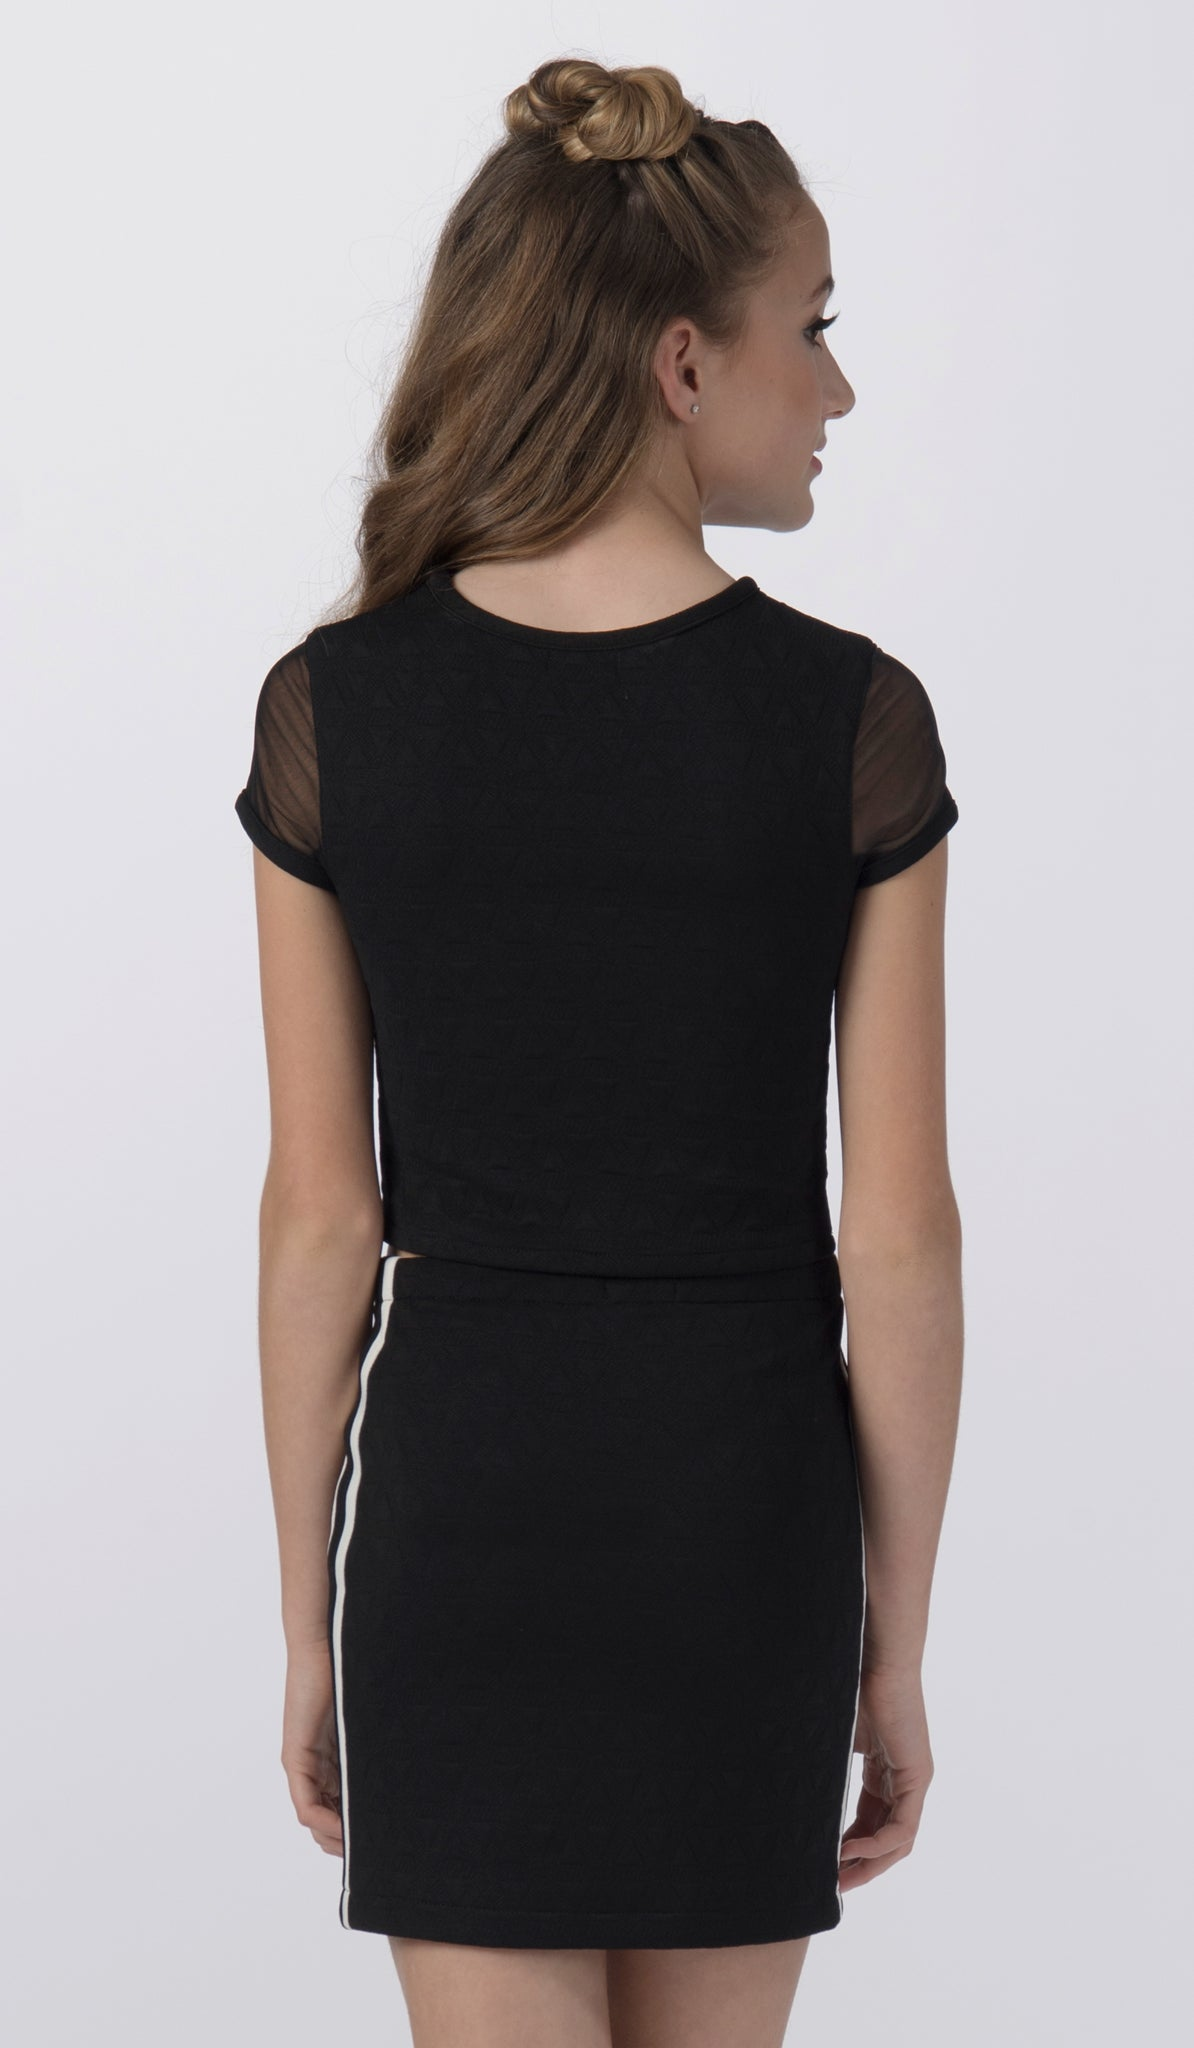 Sally Miller black stretch knit two piece set back view.